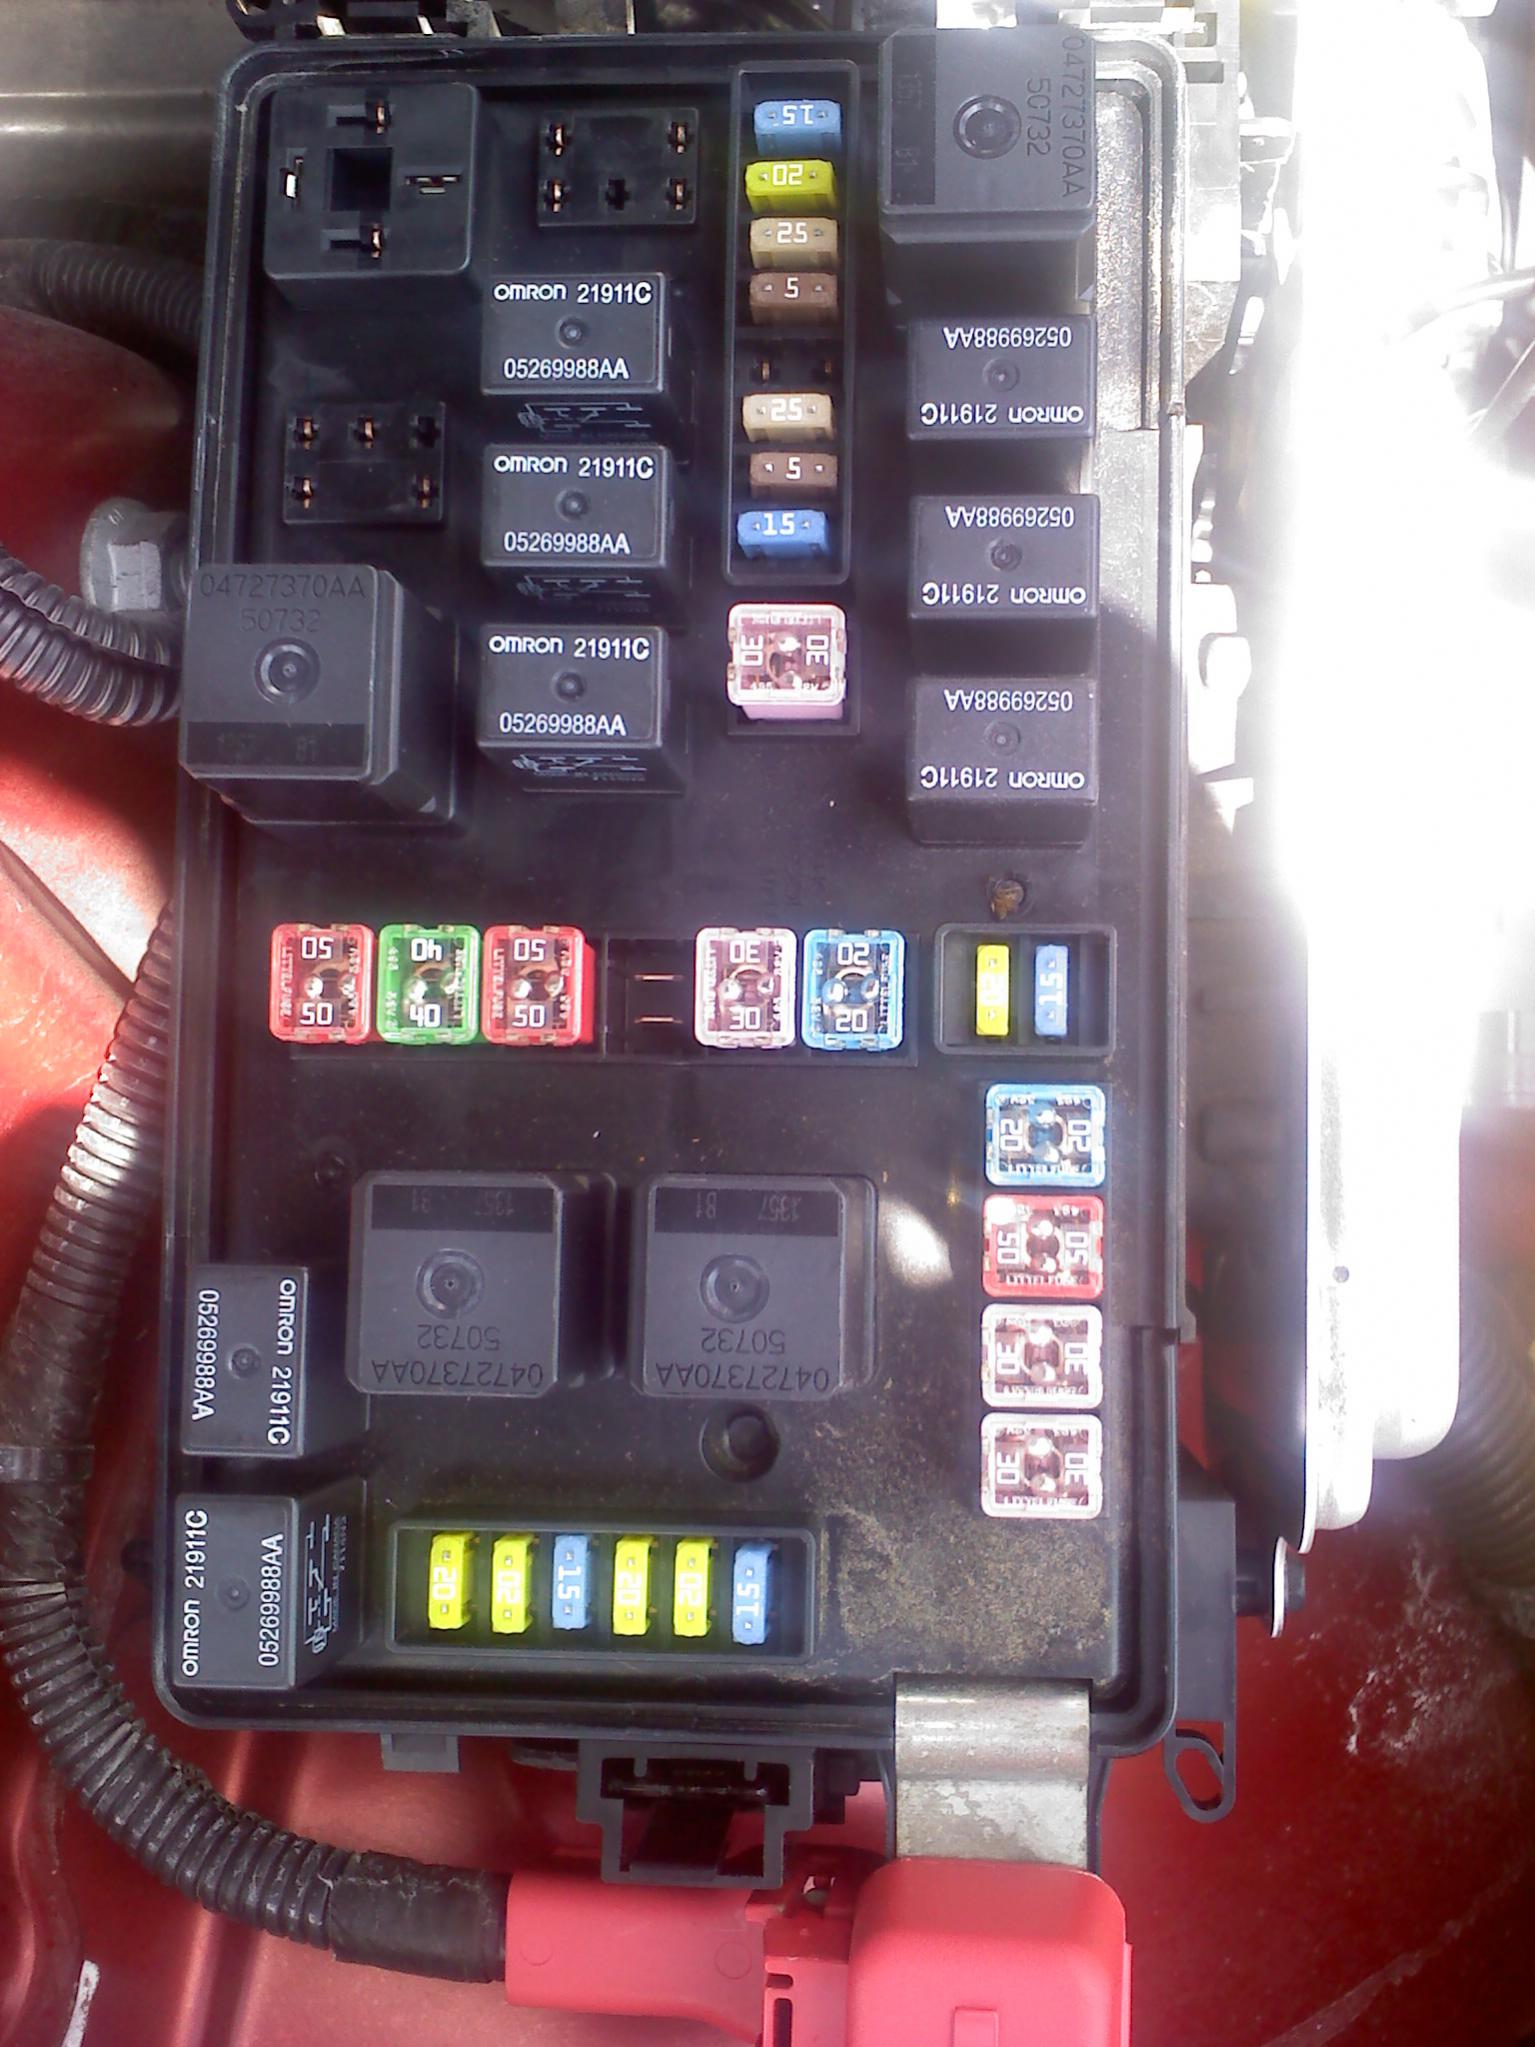 [DIAGRAM_5NL]  Car won't crank! Please look at my fusebox! 2007 2.7 dodge charger | Charger  Forums | 2007 Dodge Charger Fuse Box |  | Charger Forums